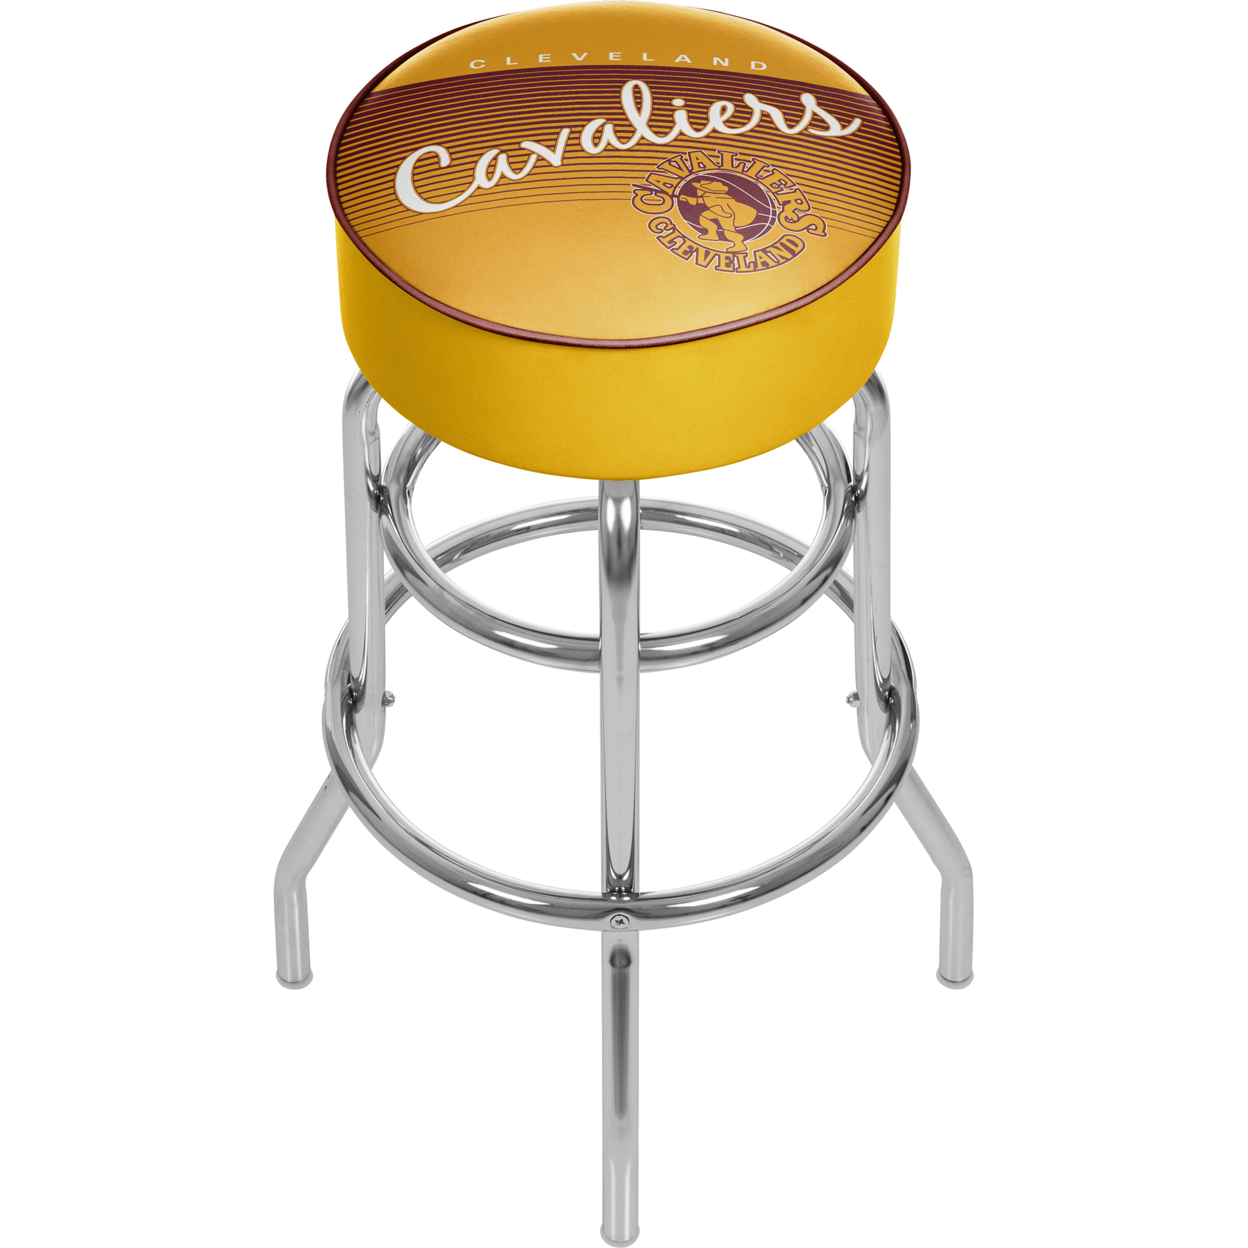 Cleveland Cavaliers NBA Hardwood Classics Padded Swivel Bar Stool 30 Inches High фанатская атрибутика nike curry nba